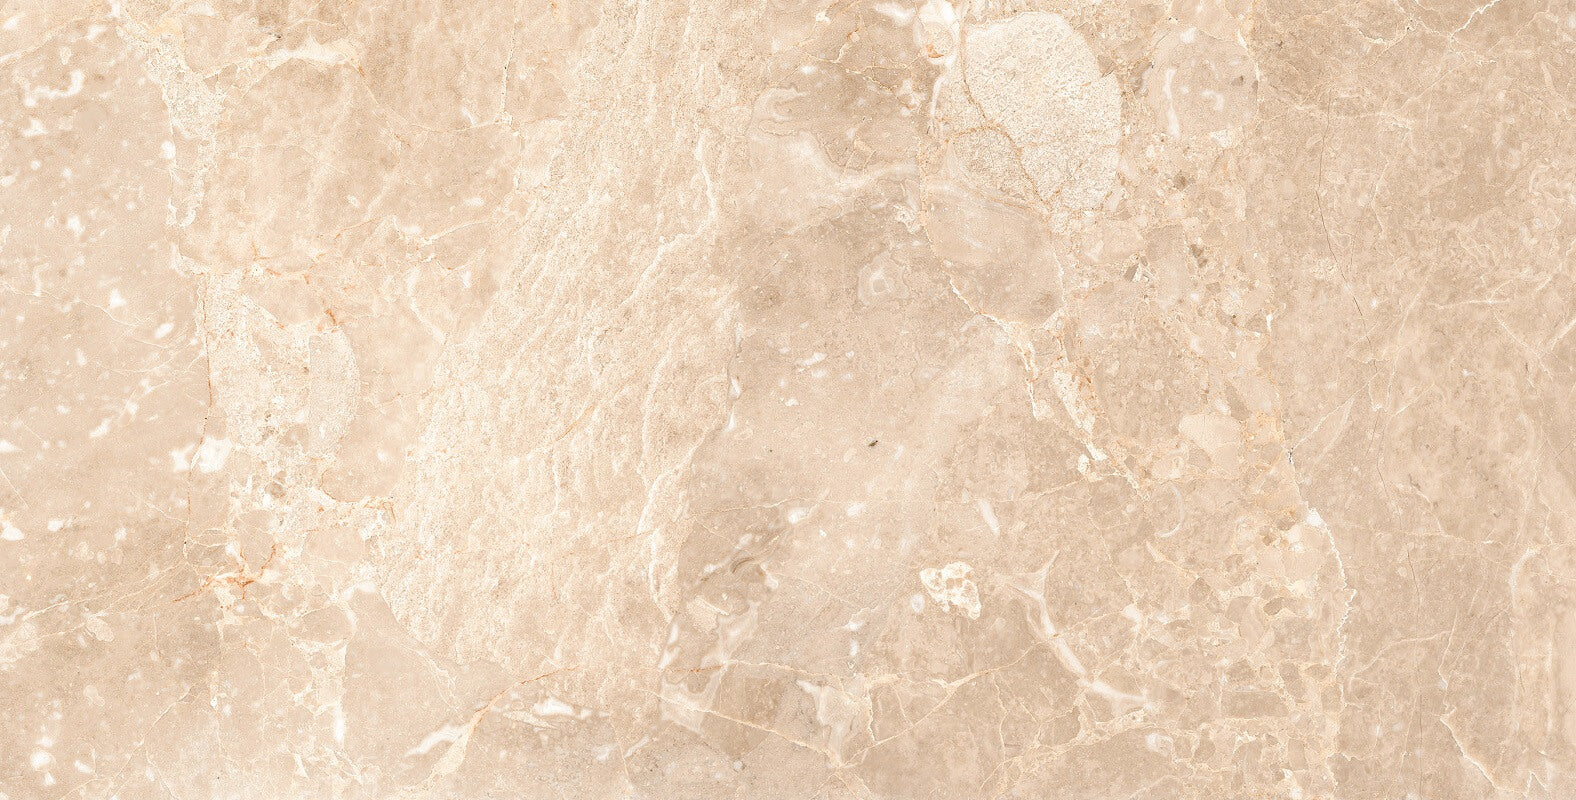 Porcelain Kitchen Tiles With An Opulent Cream Marble Effect